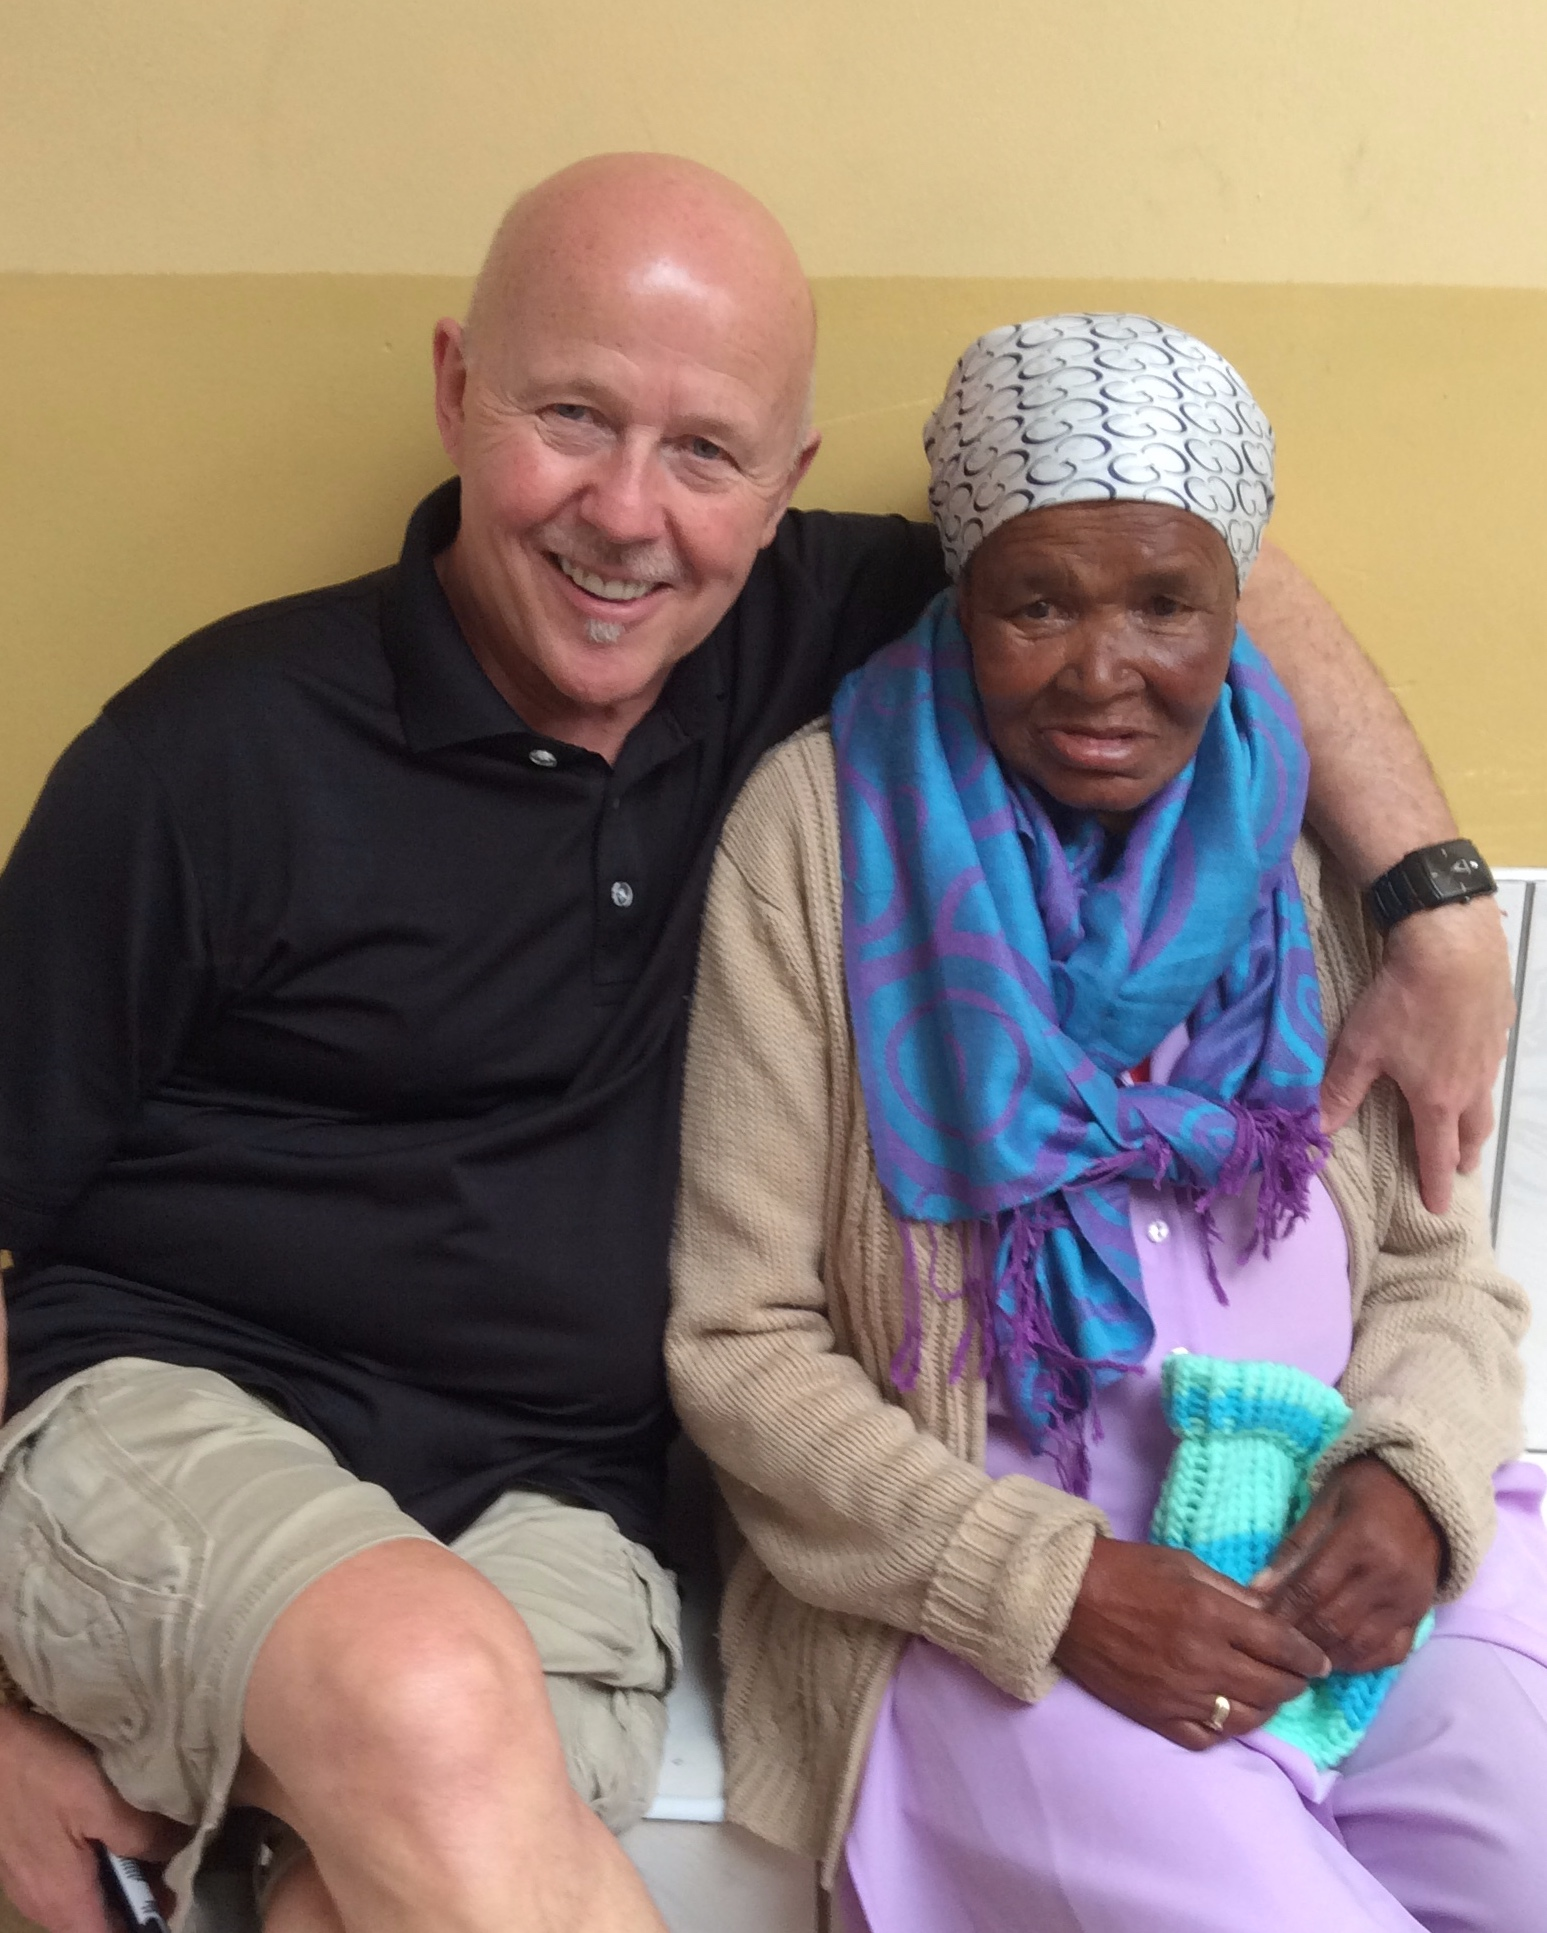 Jim Cassidy, AIAIA President, annually visits residents of the Missionaries of Charity home in Khayelitsha